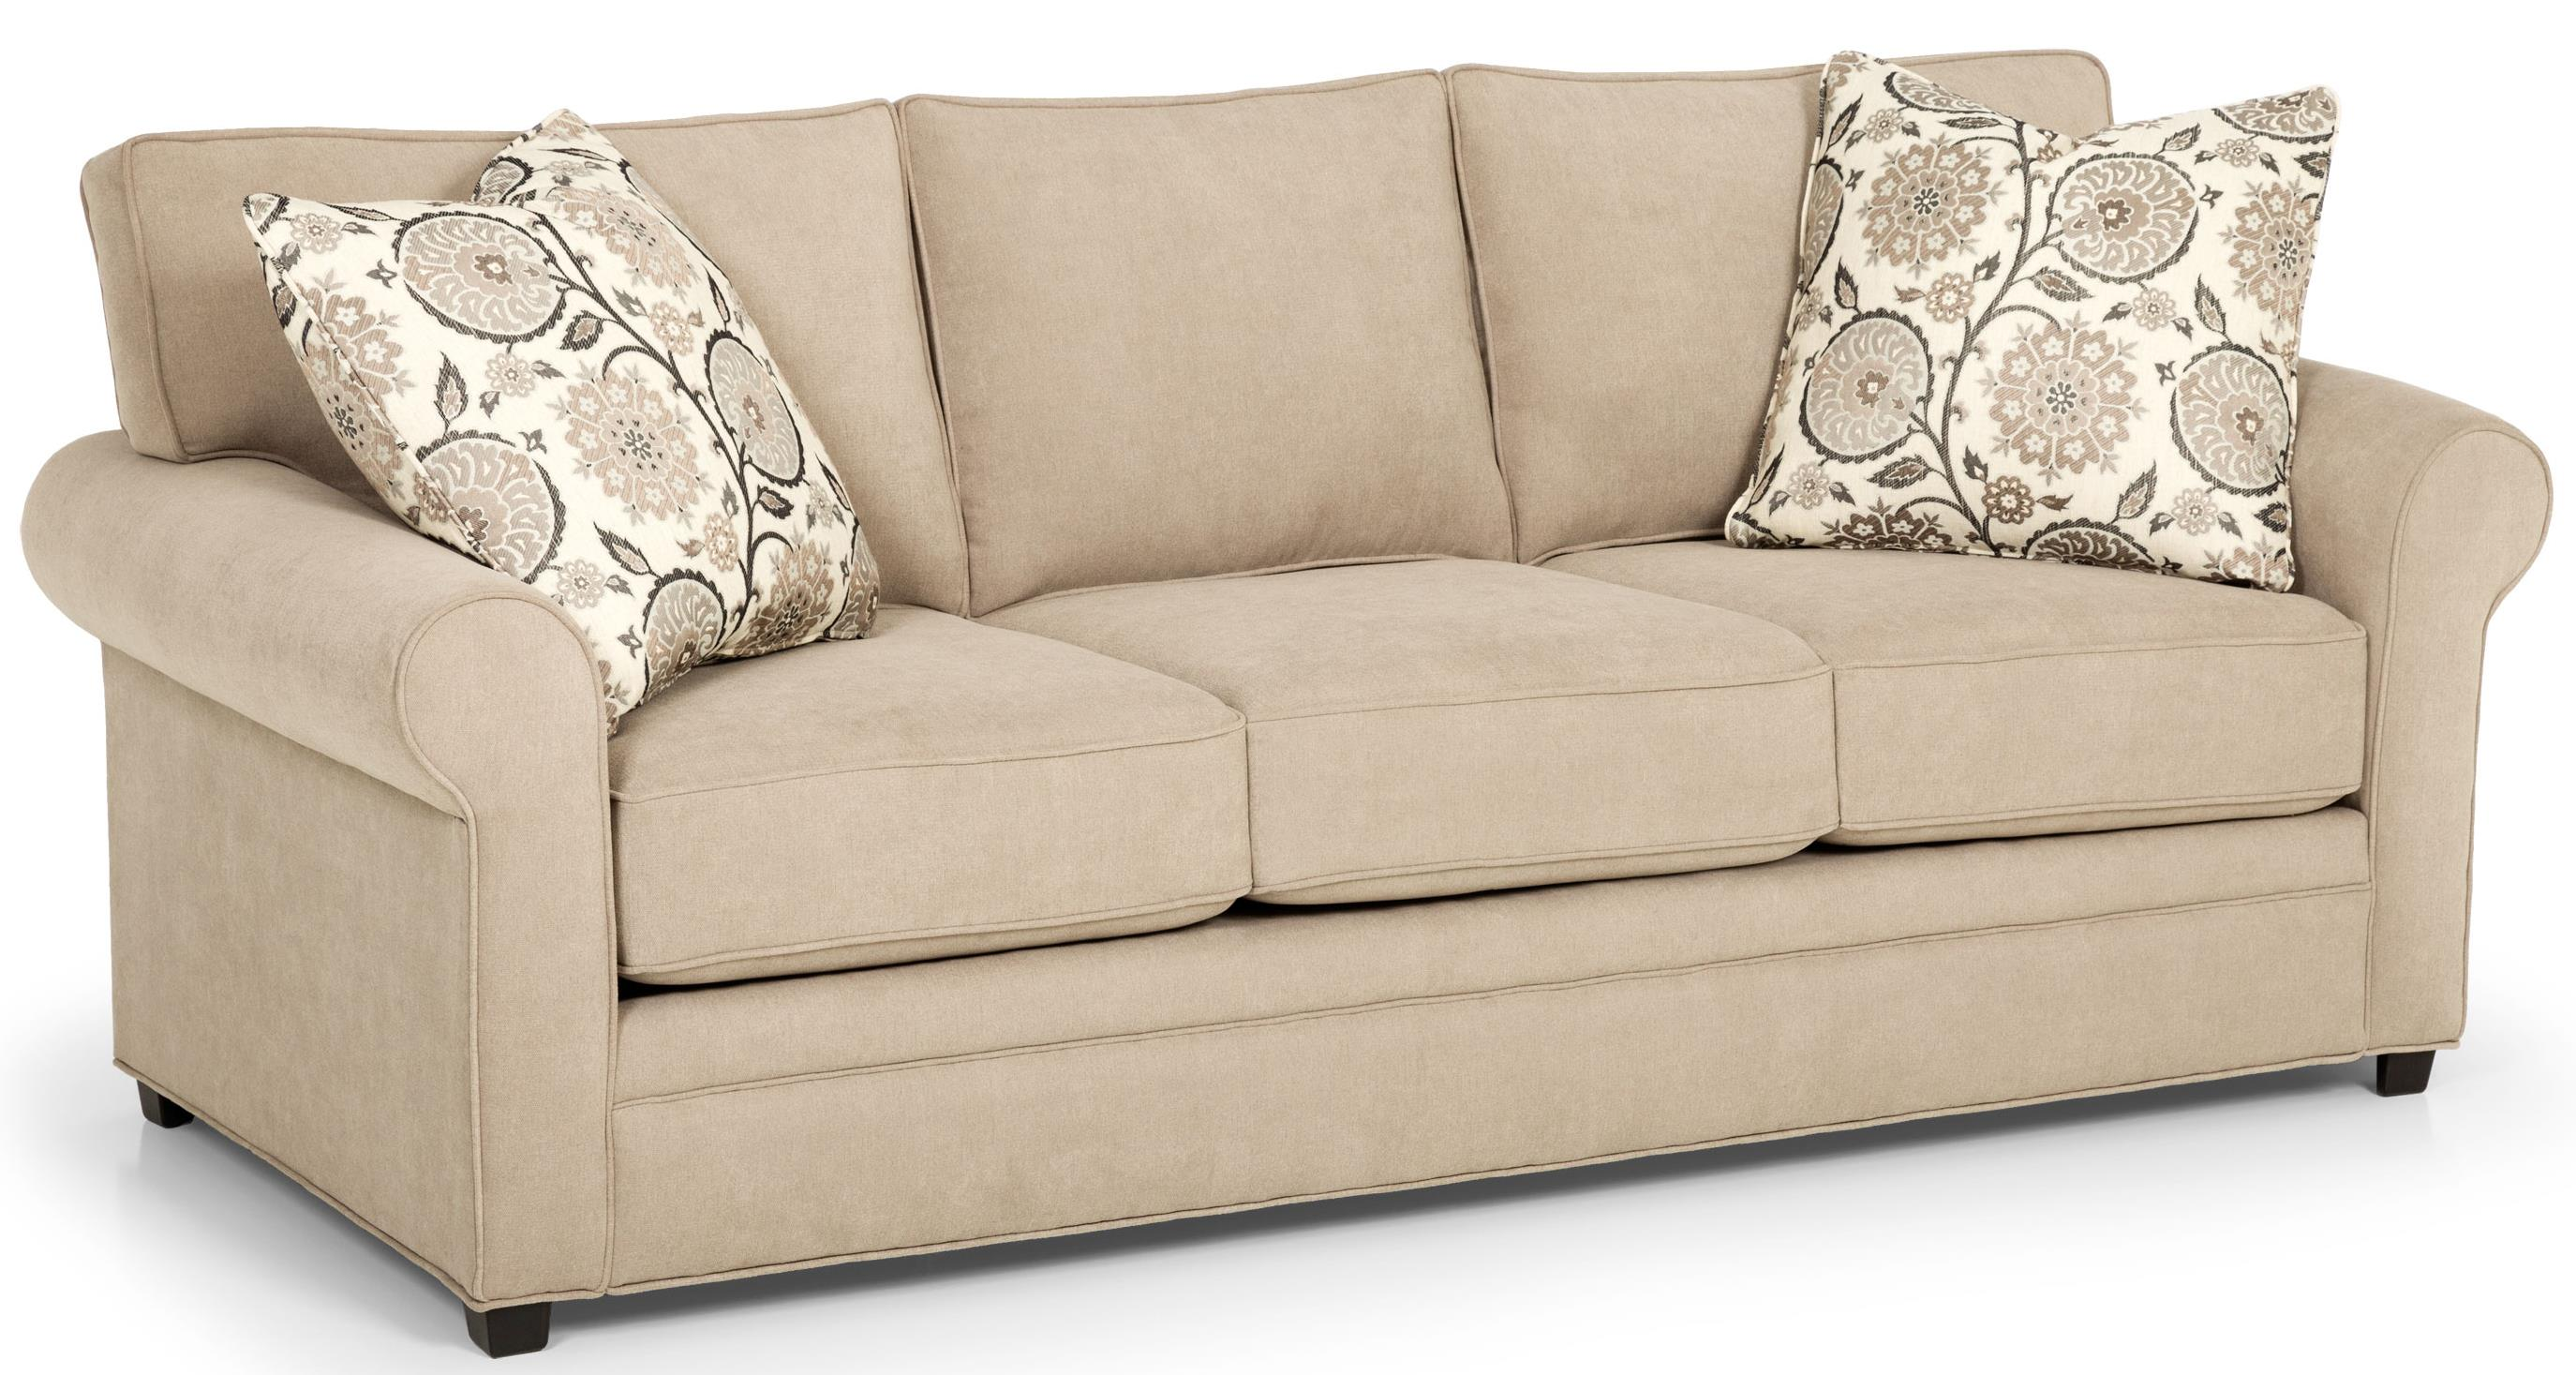 283 Queen Gel Sofa Sleeper by Sunset Home at Sadler's Home Furnishings